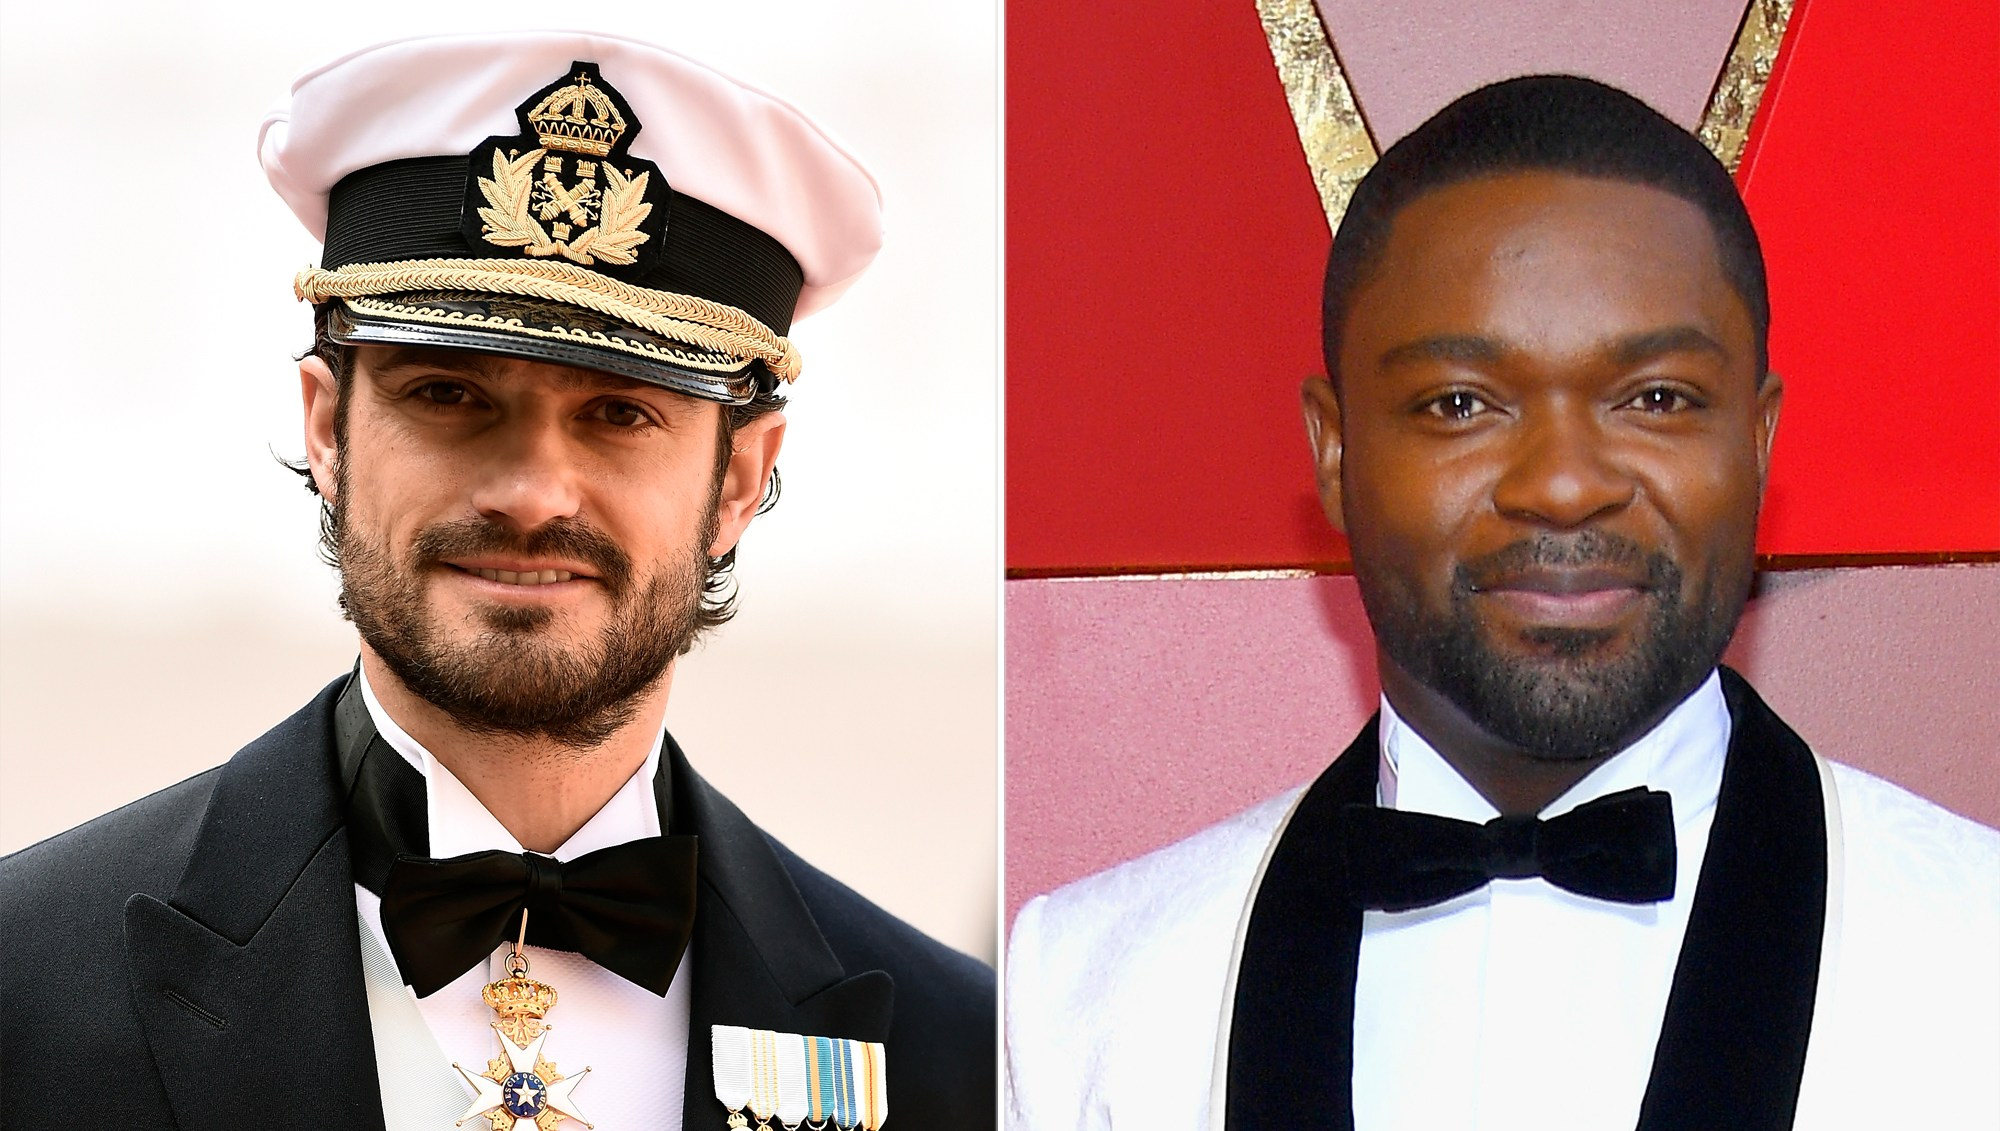 16 of the Hottest Male Royals and Princes Around the World